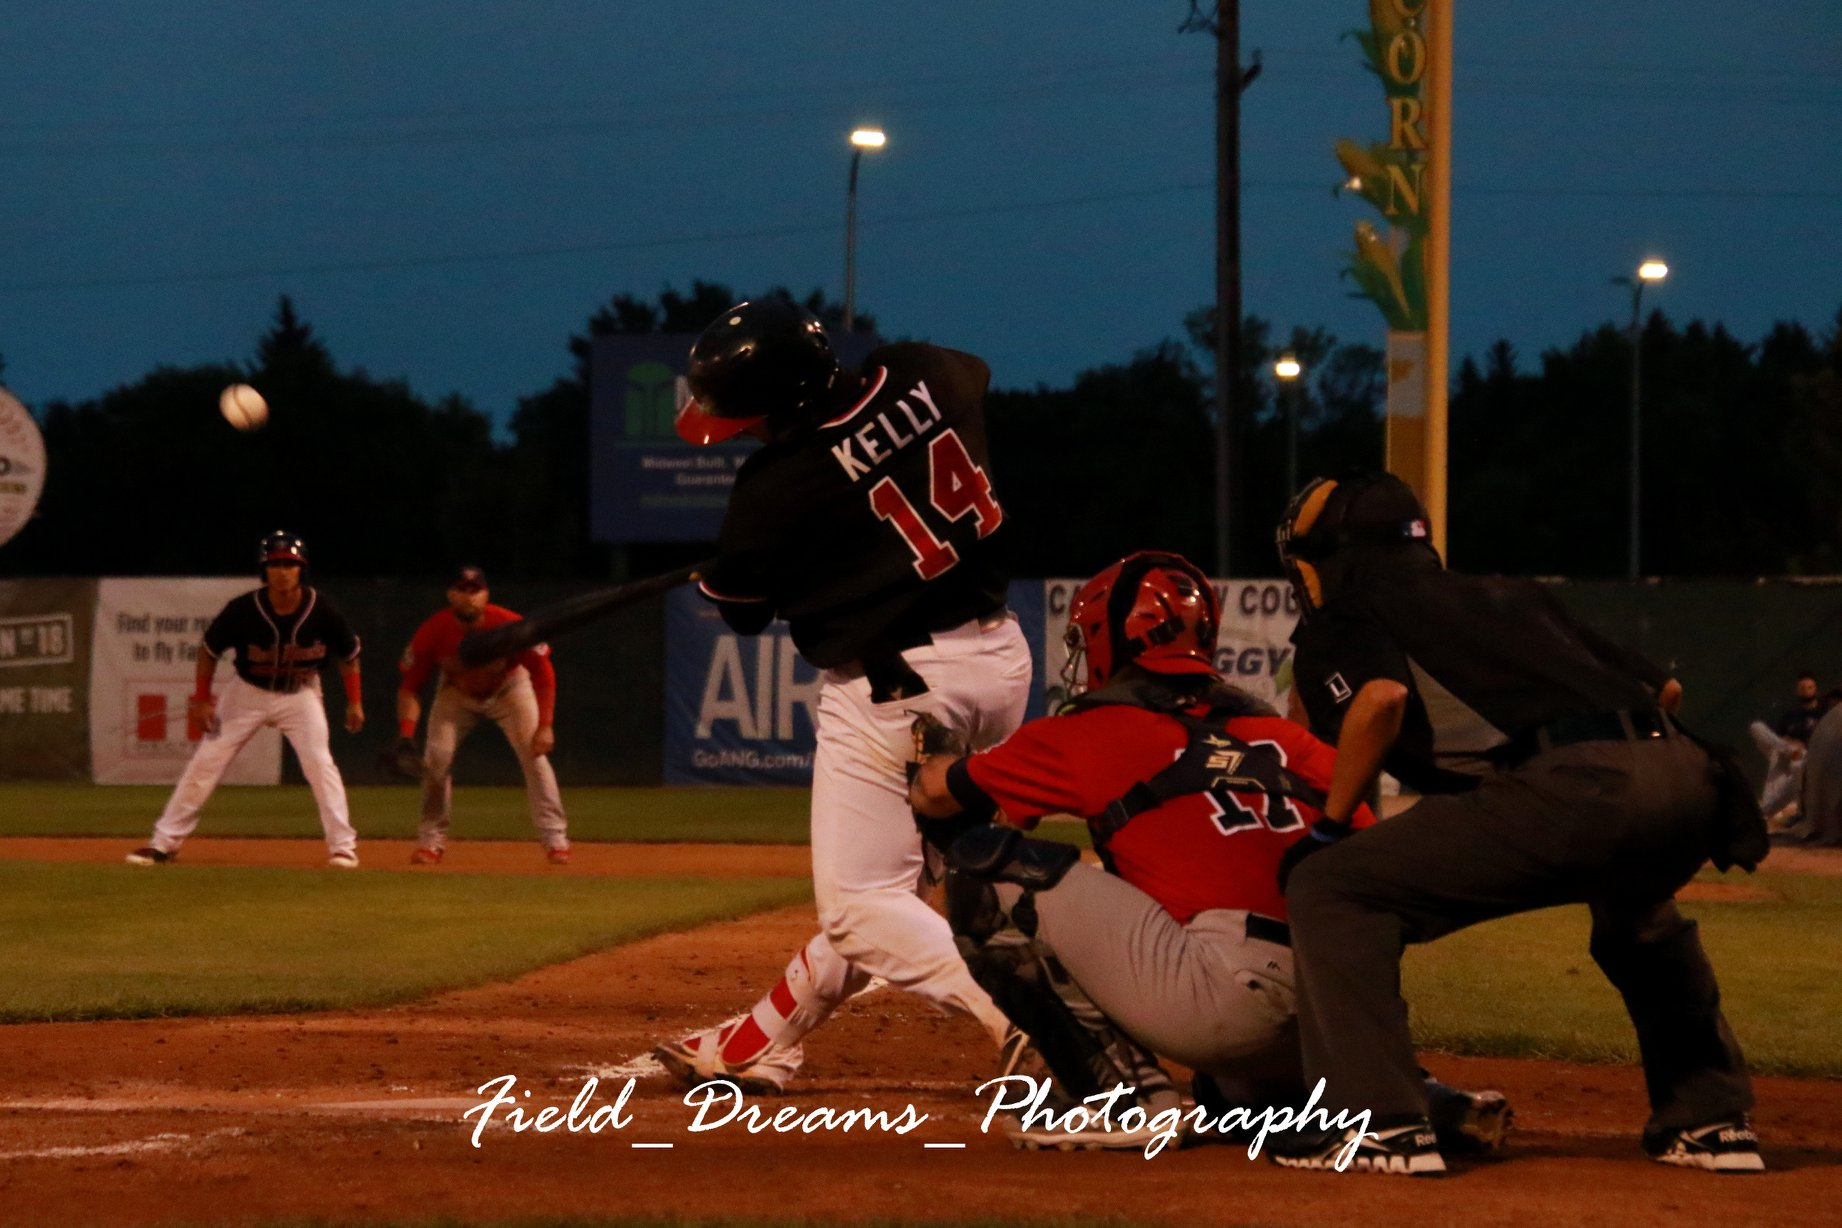 Hutchison Dominant, Saints Crush Canaries - American Association Daily